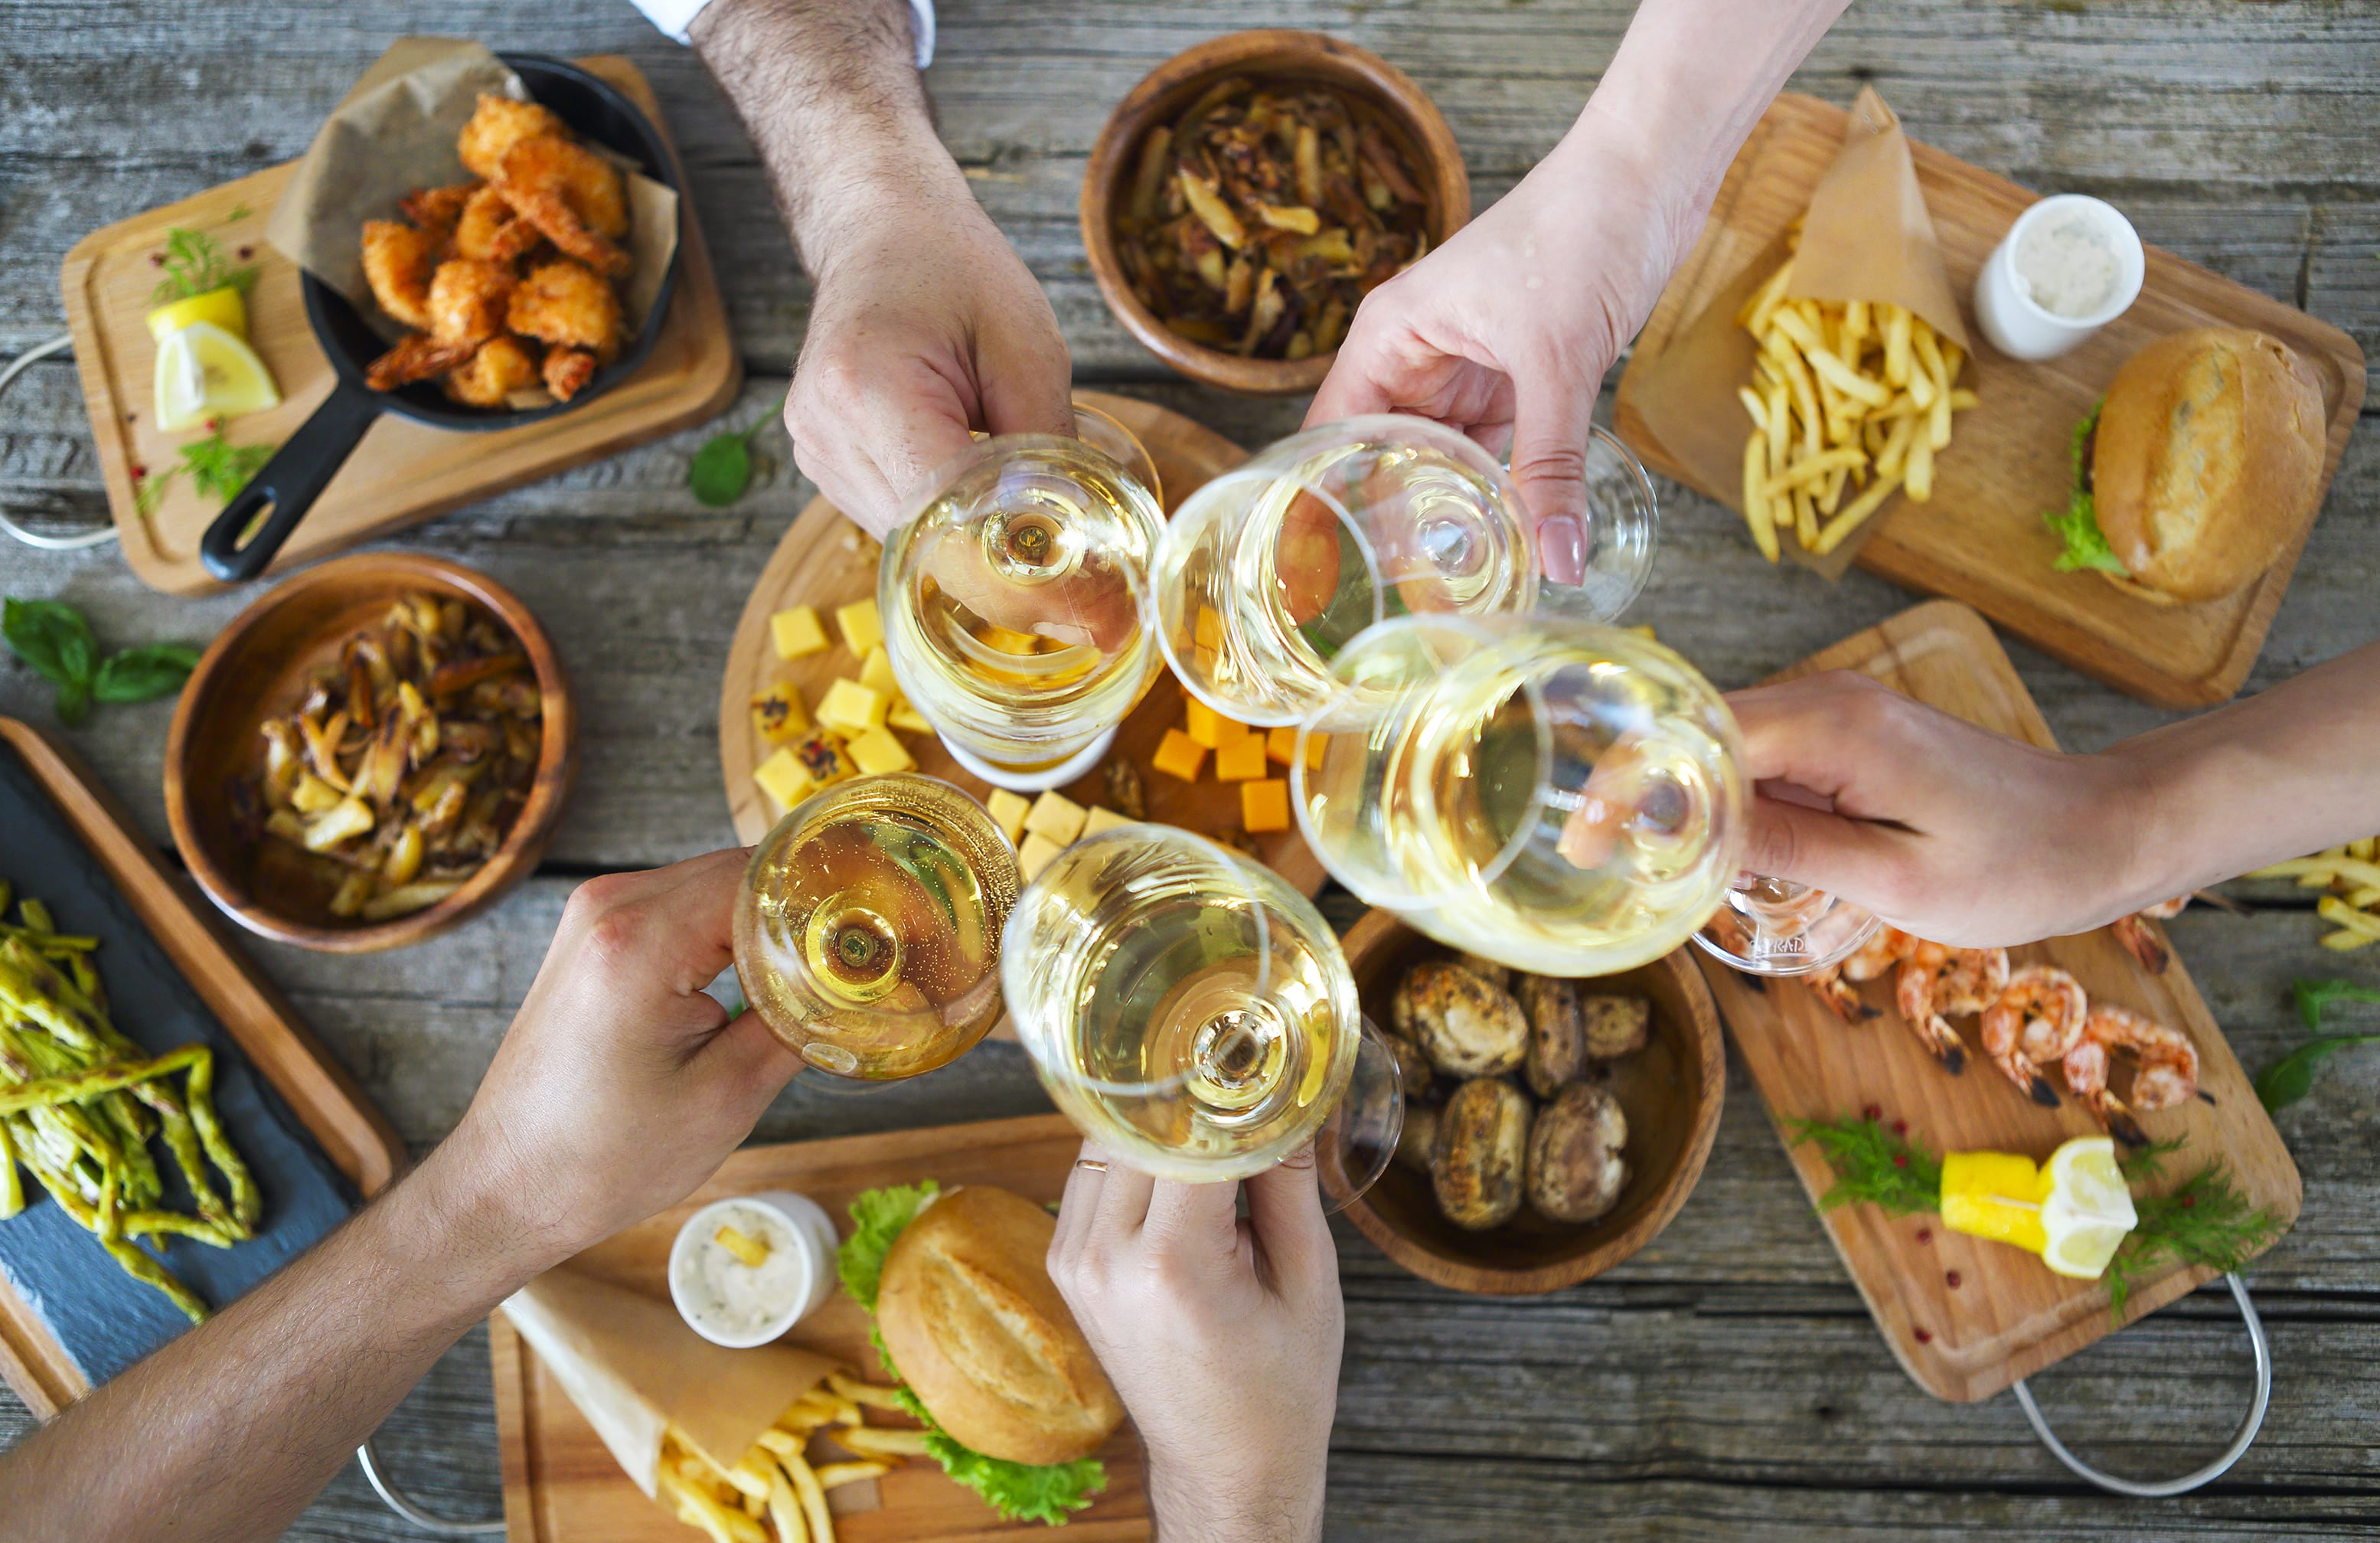 Hands,With,White,Wine,Toasting,Over,Served,Table,With,Food.